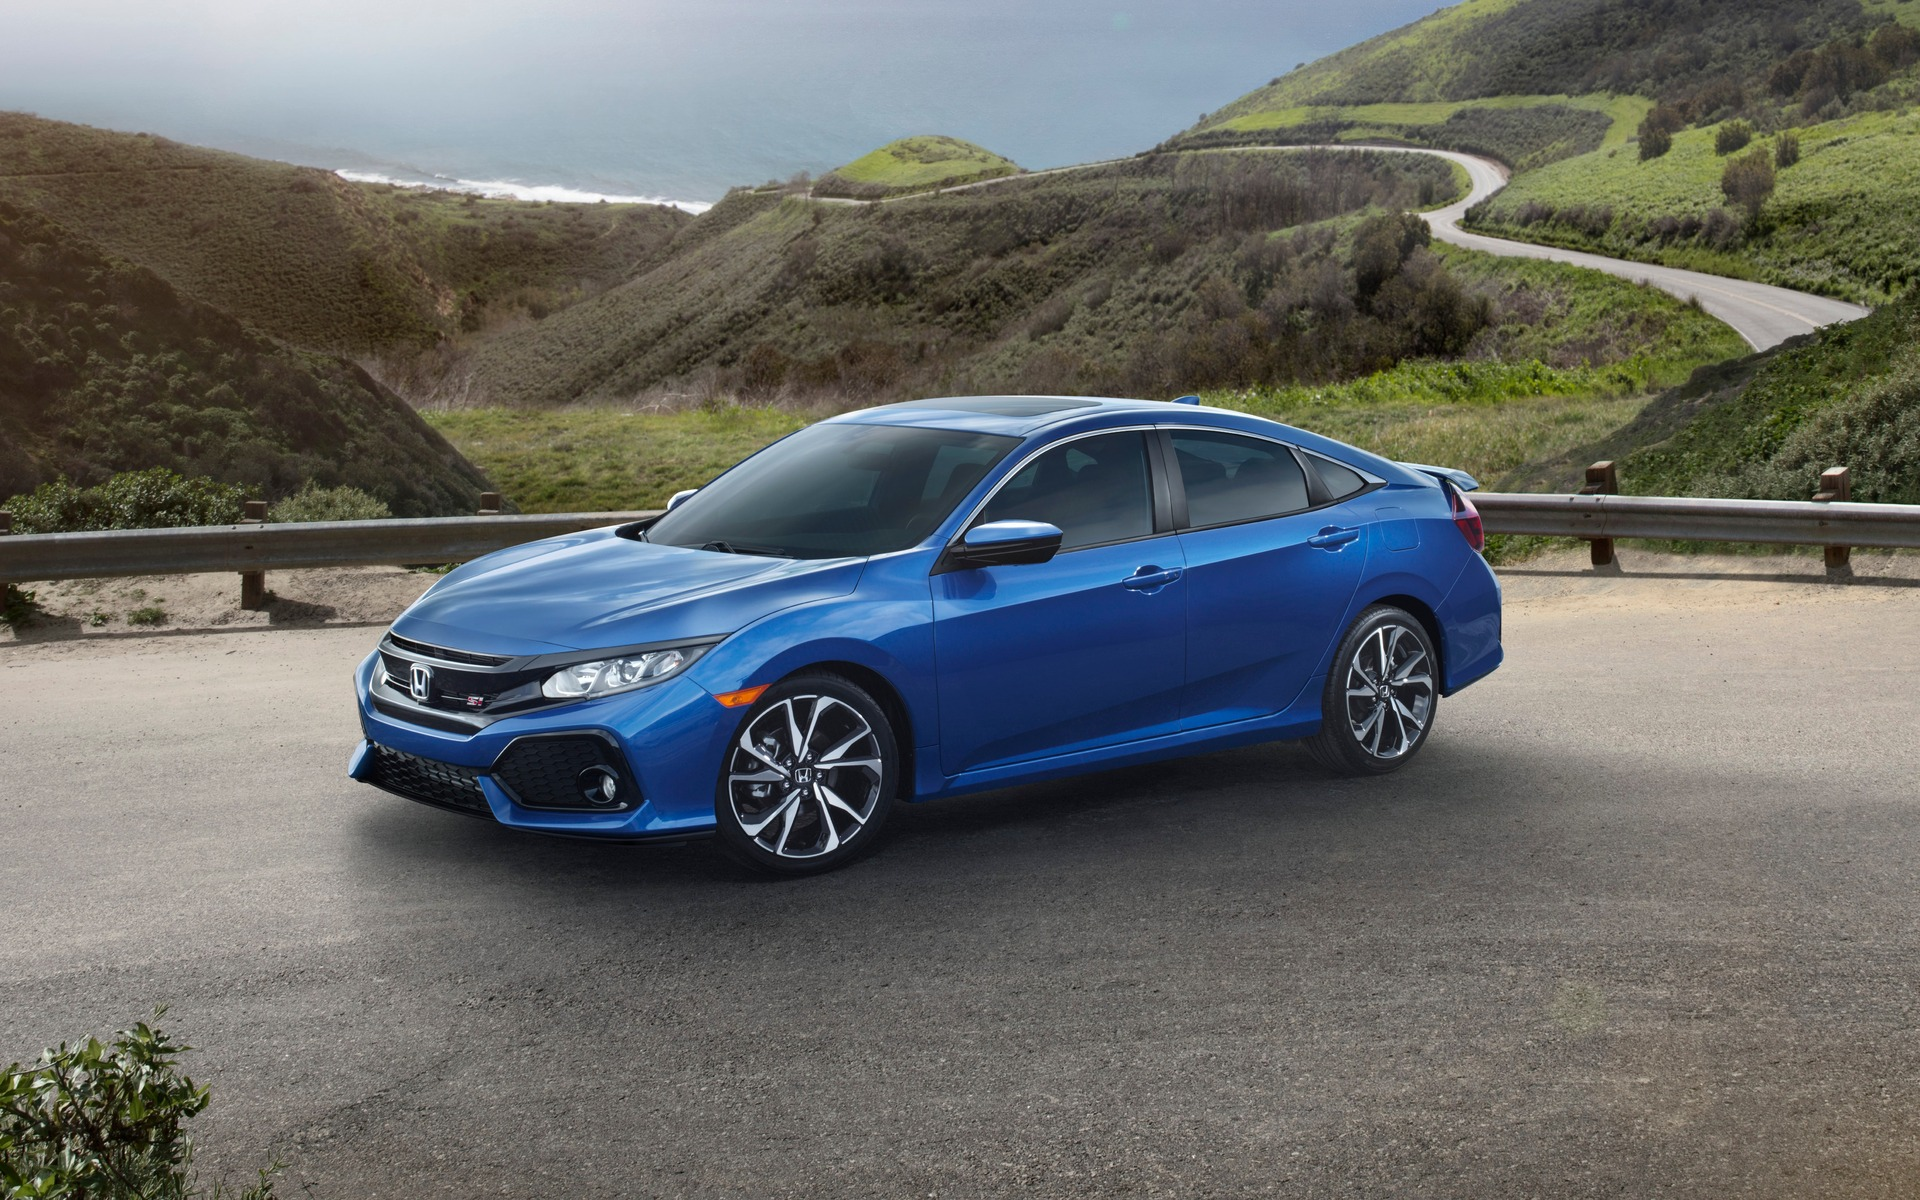 2018 Honda Civic Lx Sedan Man Specifications The Car Guide